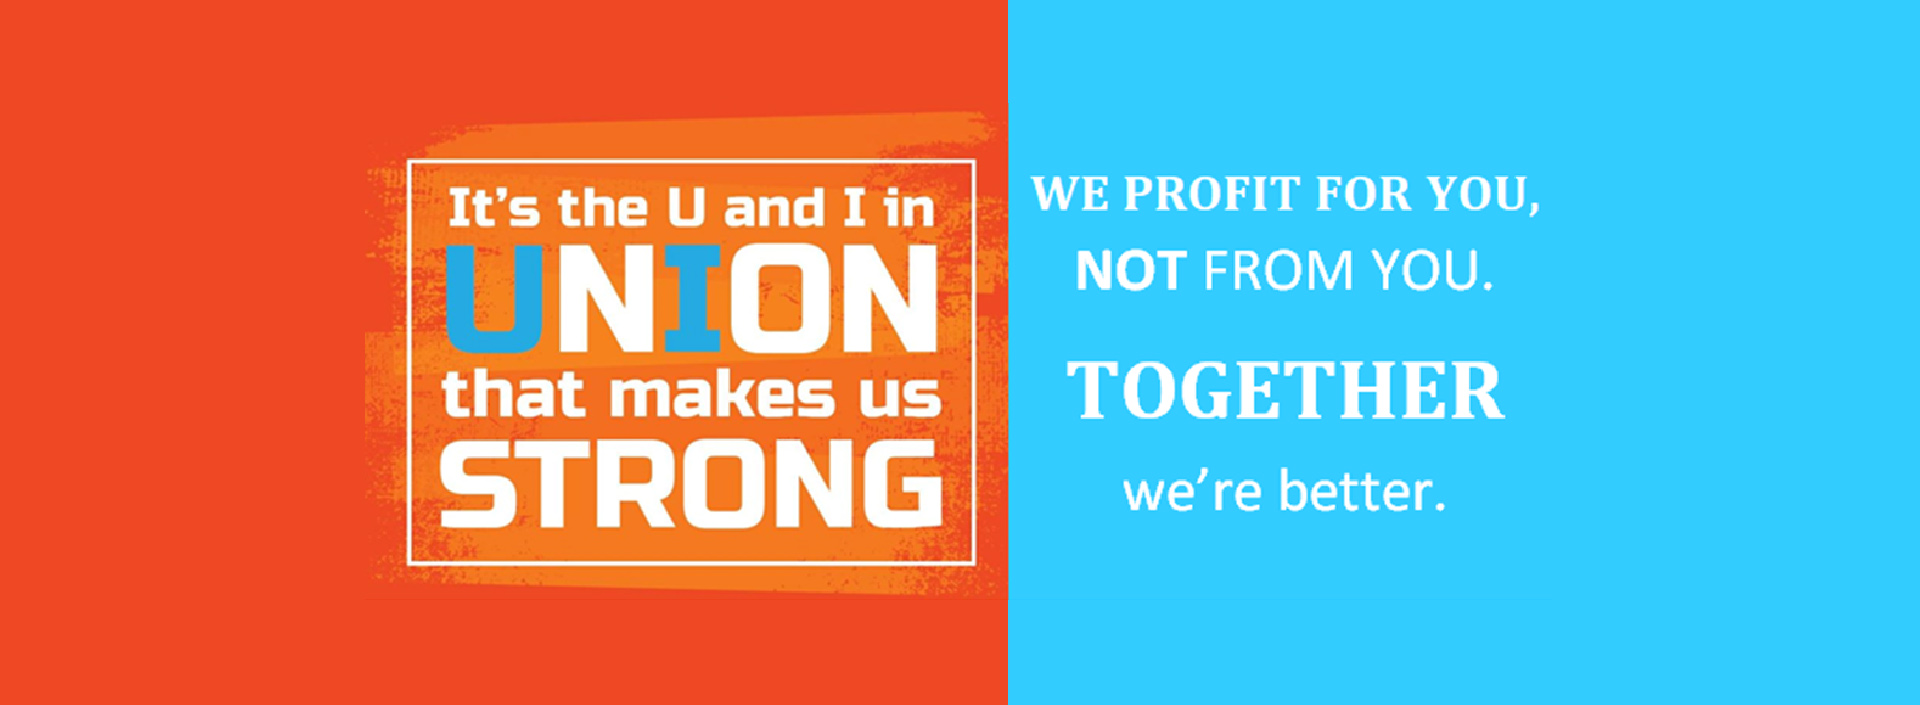 together we're better graphic